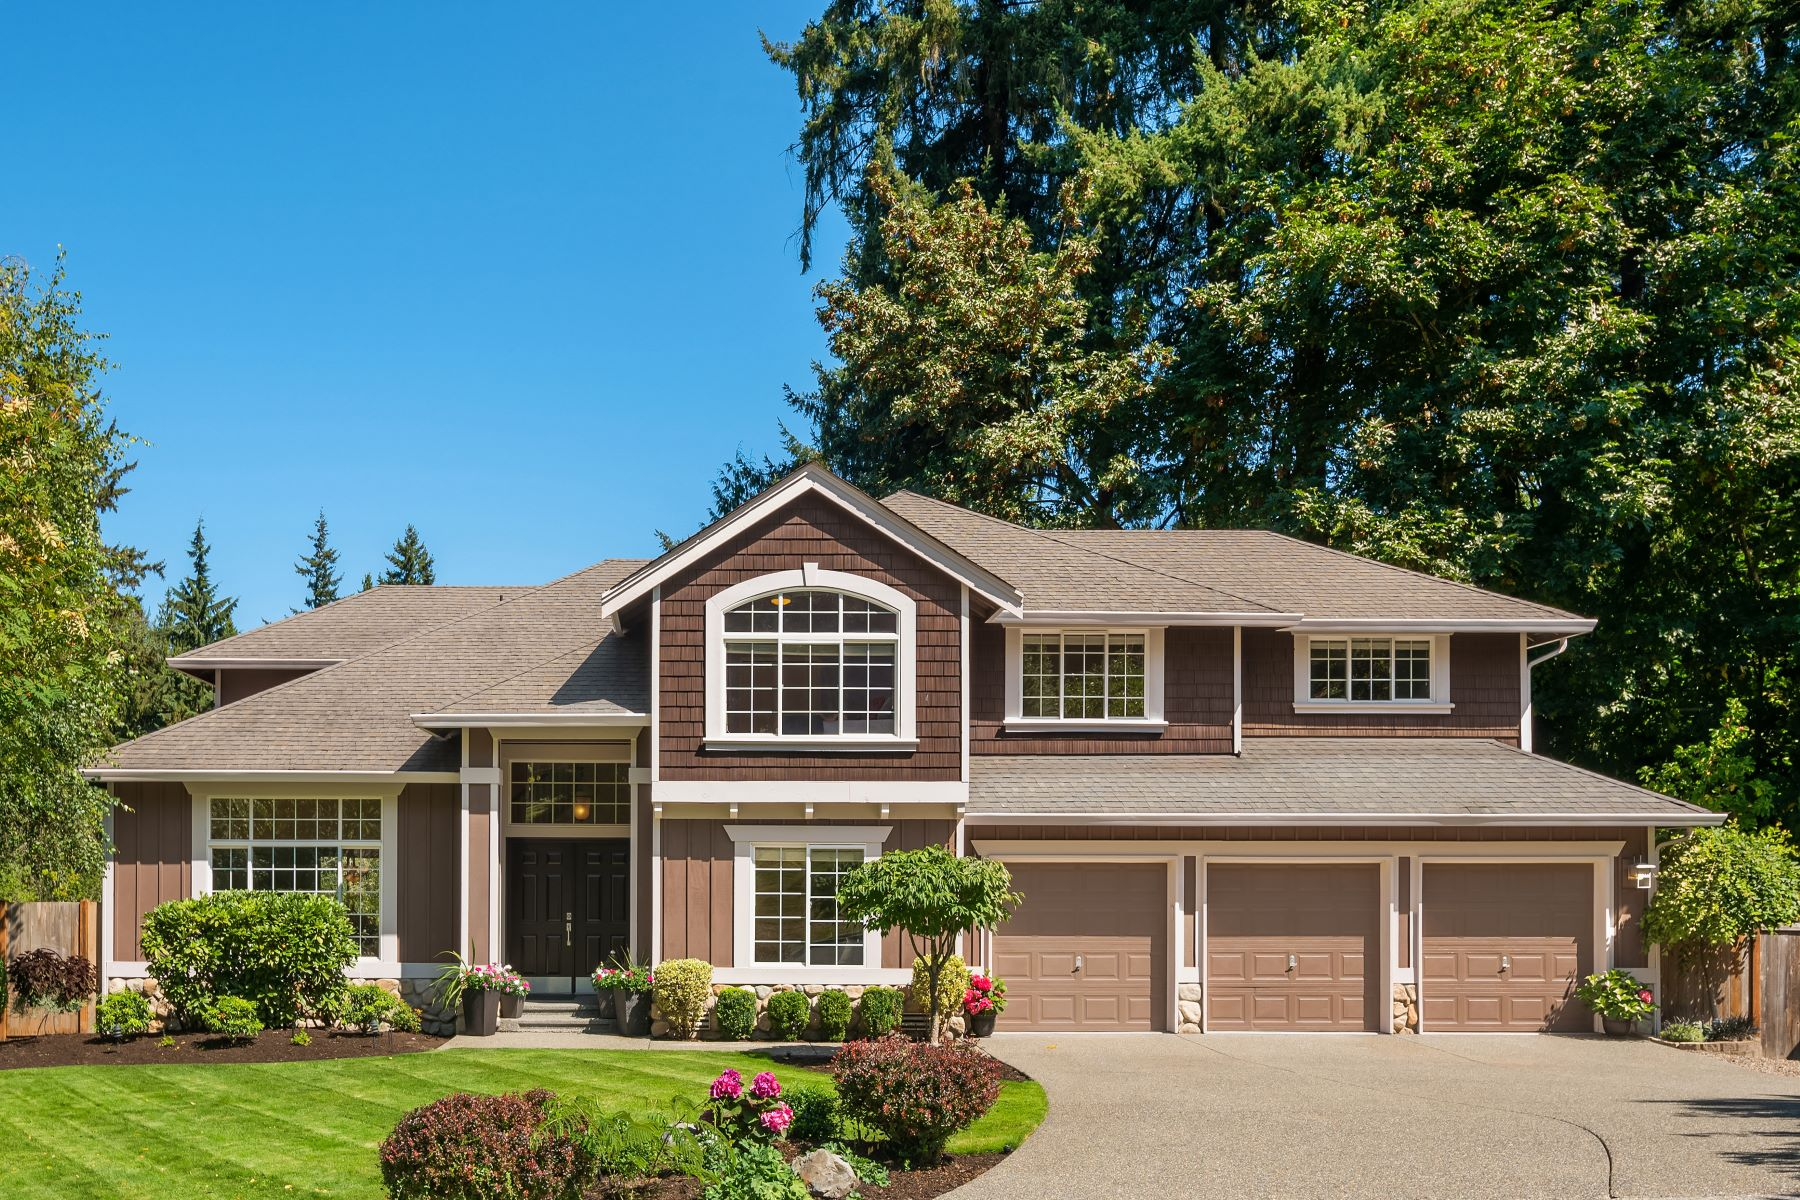 Single Family Homes for Sale at Bothell Charmer 23919 30th Dr SE Bothell, Washington 98021 United States